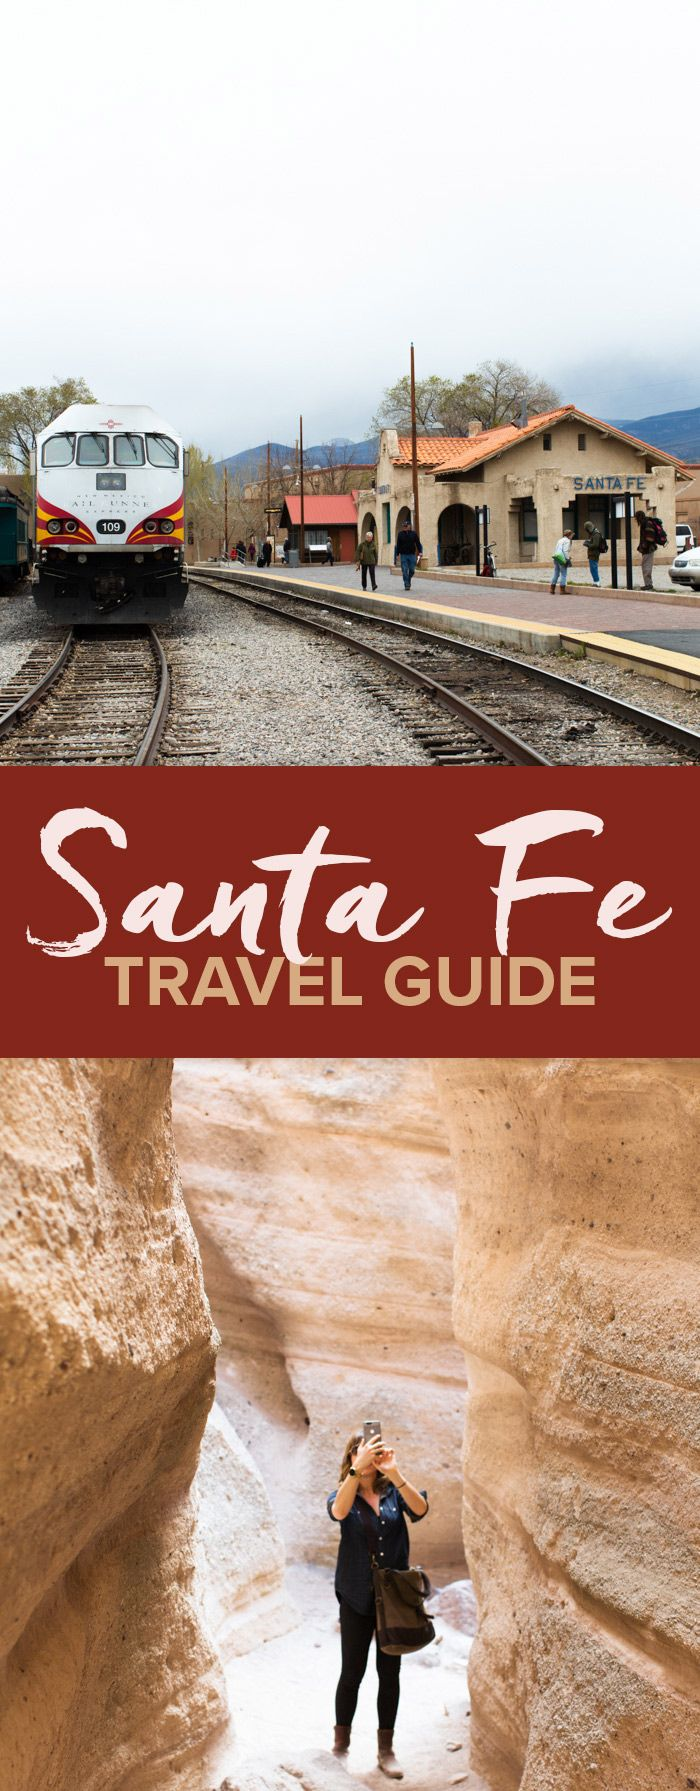 Santa Fe,New Mexico including enchiladas, drinking chocolate, Tent Rocks, ladder climbing,…